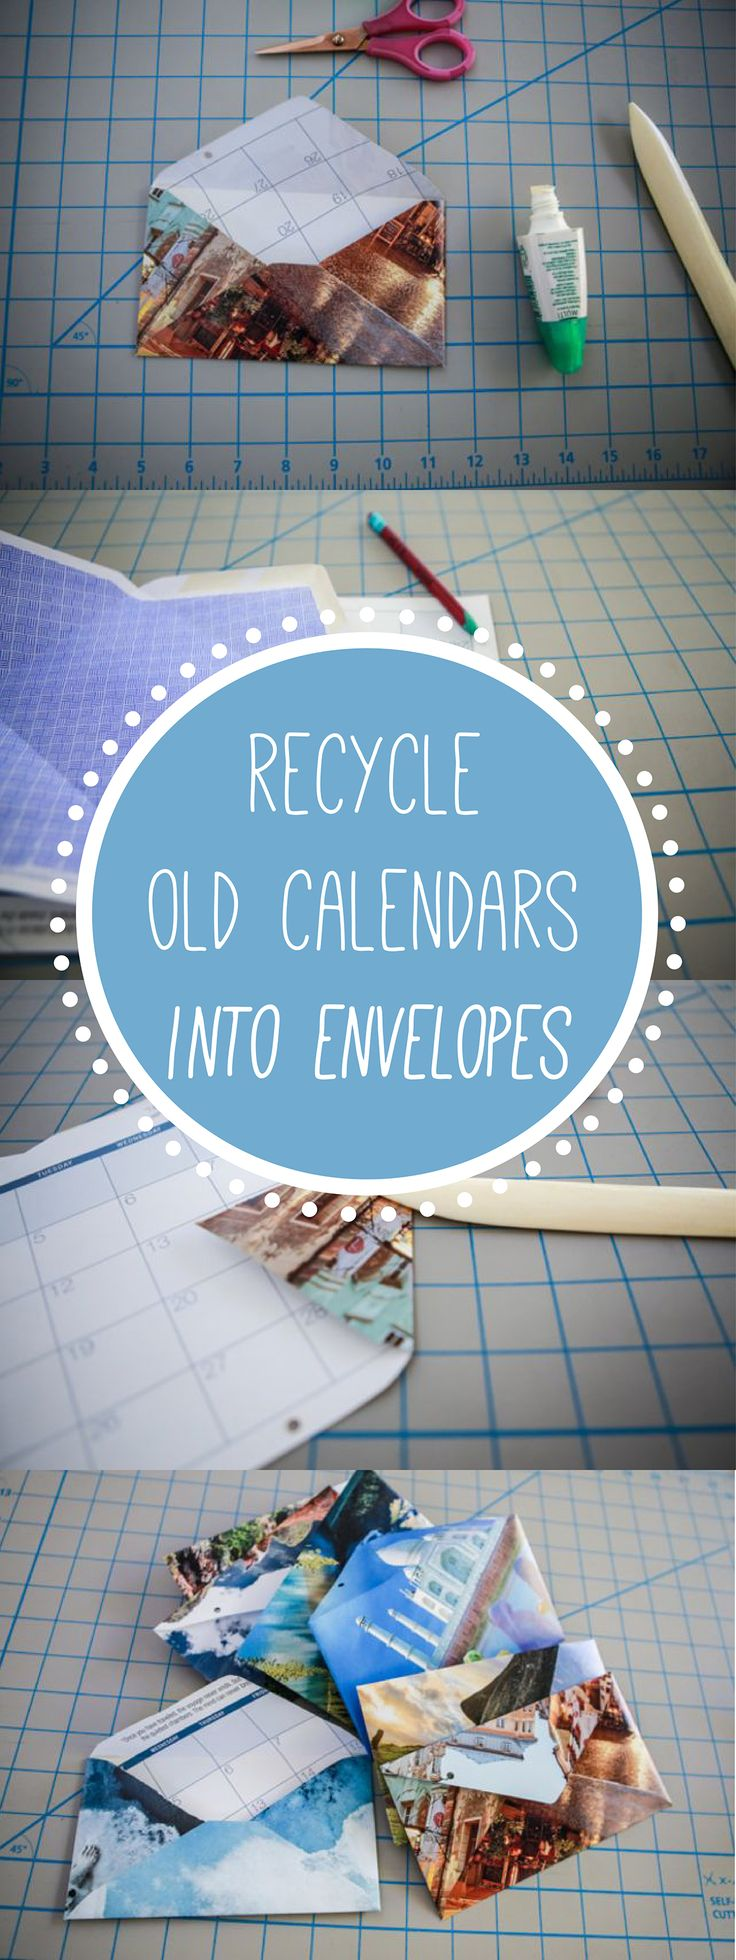 Great idea! Recycle old calendars into super simple envelopes. Who wouldn't want to get this in the mail? It makes your letter that much more special.  http://www.ehow.com/how_12340179_recycle-old-calendar.html?utm_source=pinterest&utm_medium=fanpage&utm_content=inline